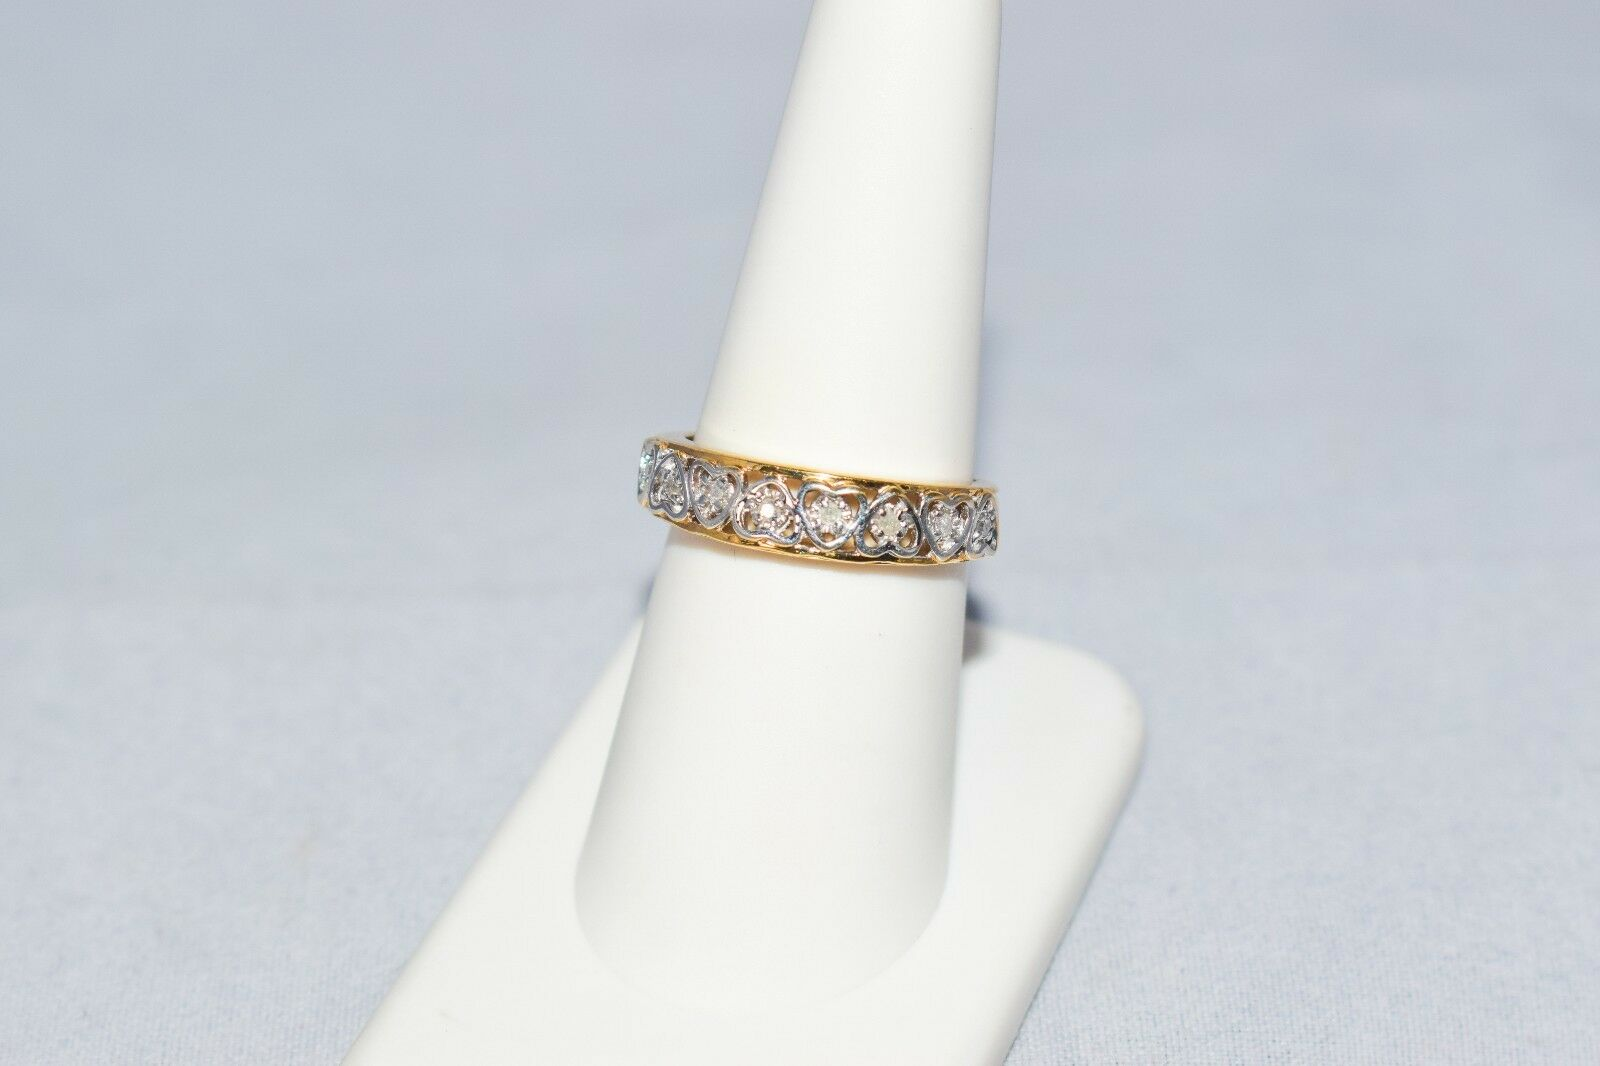 10k gold Heart Design Diamond Accents Ring Size 7 US Signed CI Beautiful